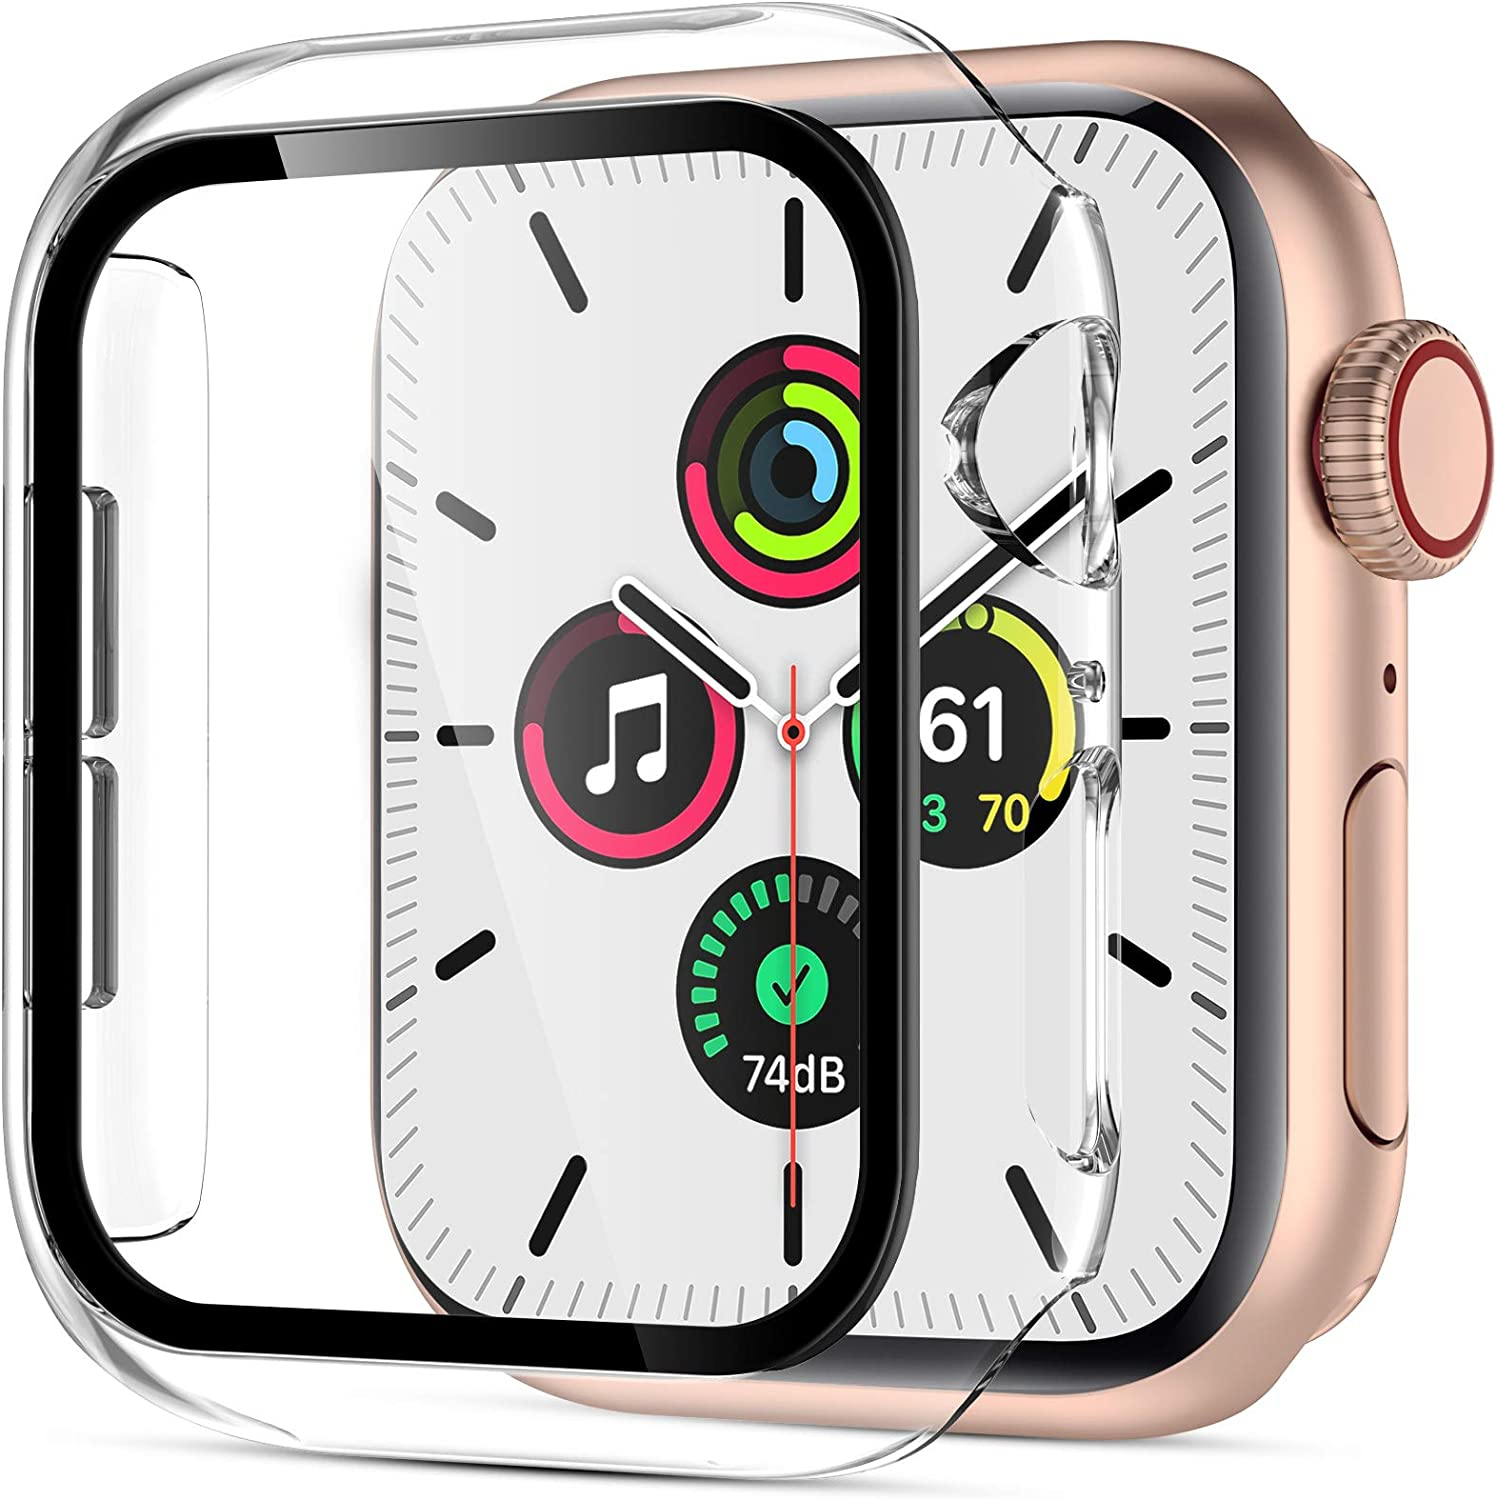 GEAK Compatible with Apple Watch Case 40mm Series 4 with Screen Protector, High Touch Screen Sensitivity Full Coverage Defense Edge Hard Case for iWatch Series 6/5/ 40mm Clear